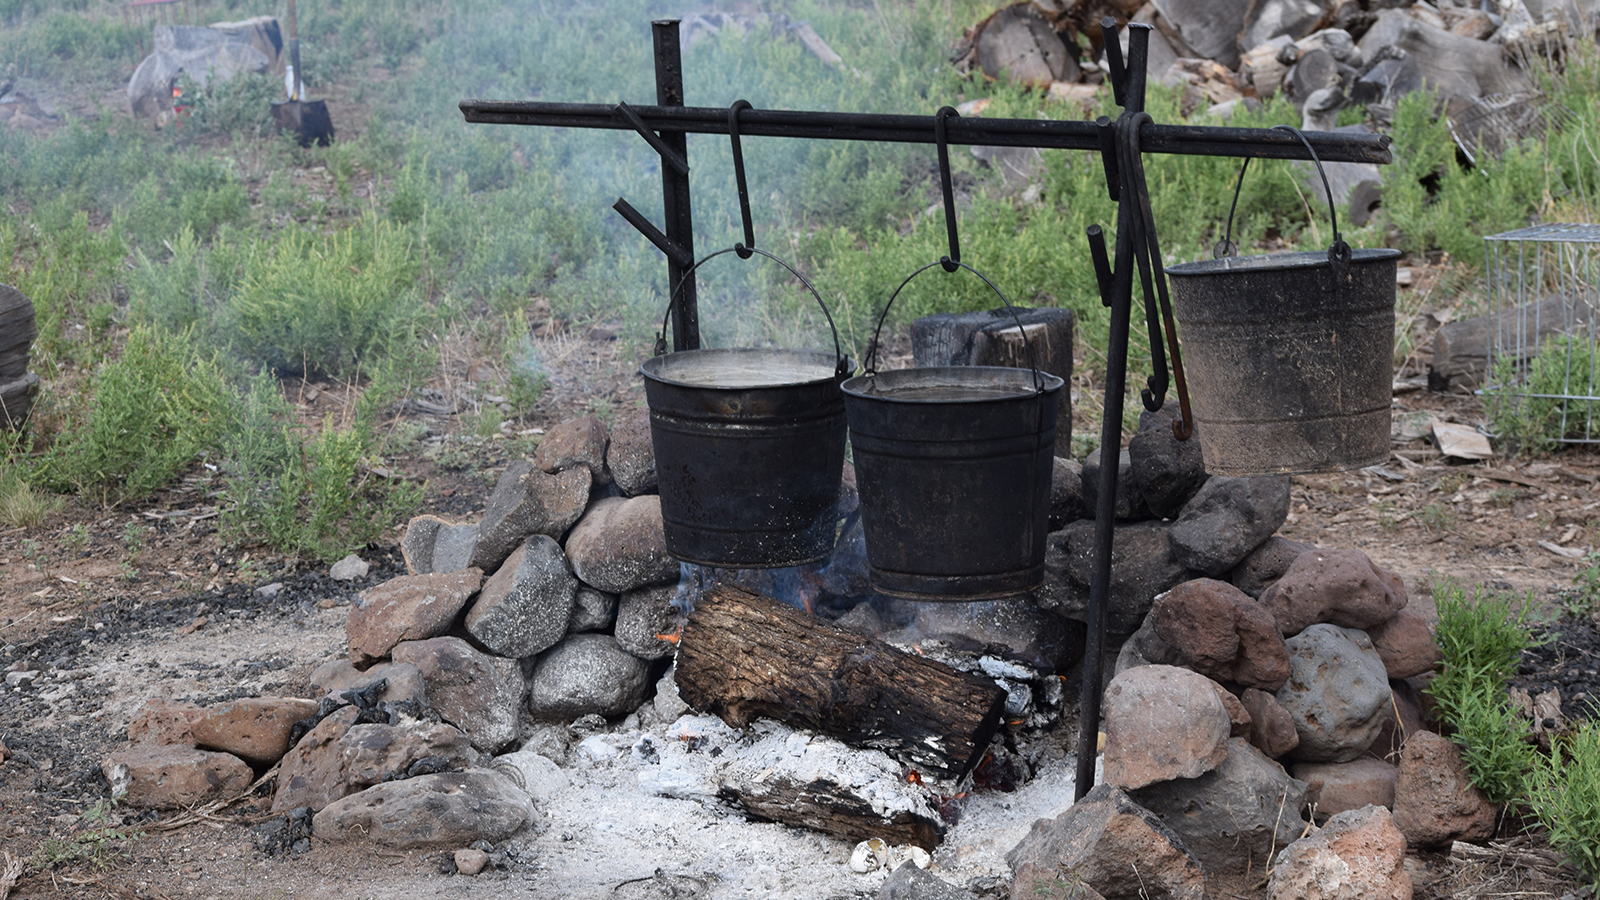 Jolyn Young prepares to cook at camp while her husbands catches wild cows.